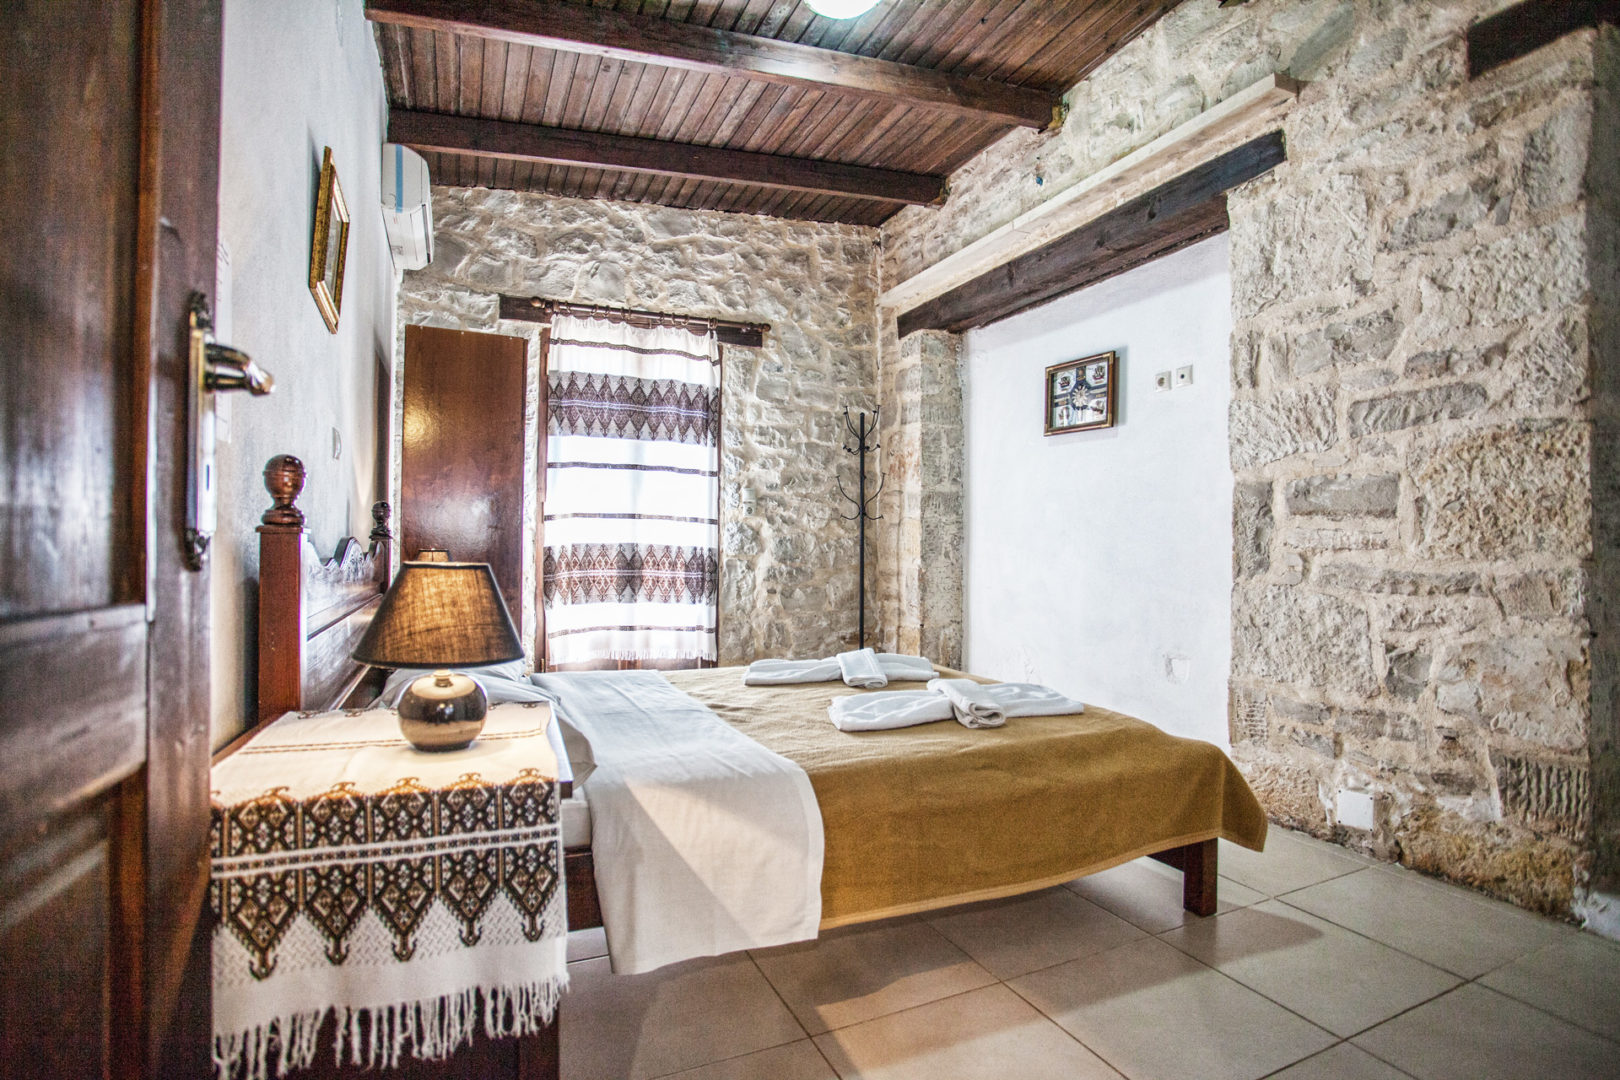 Accommodation in Bali Crete - 1-Bedroom Apartment 4 - Stone Village